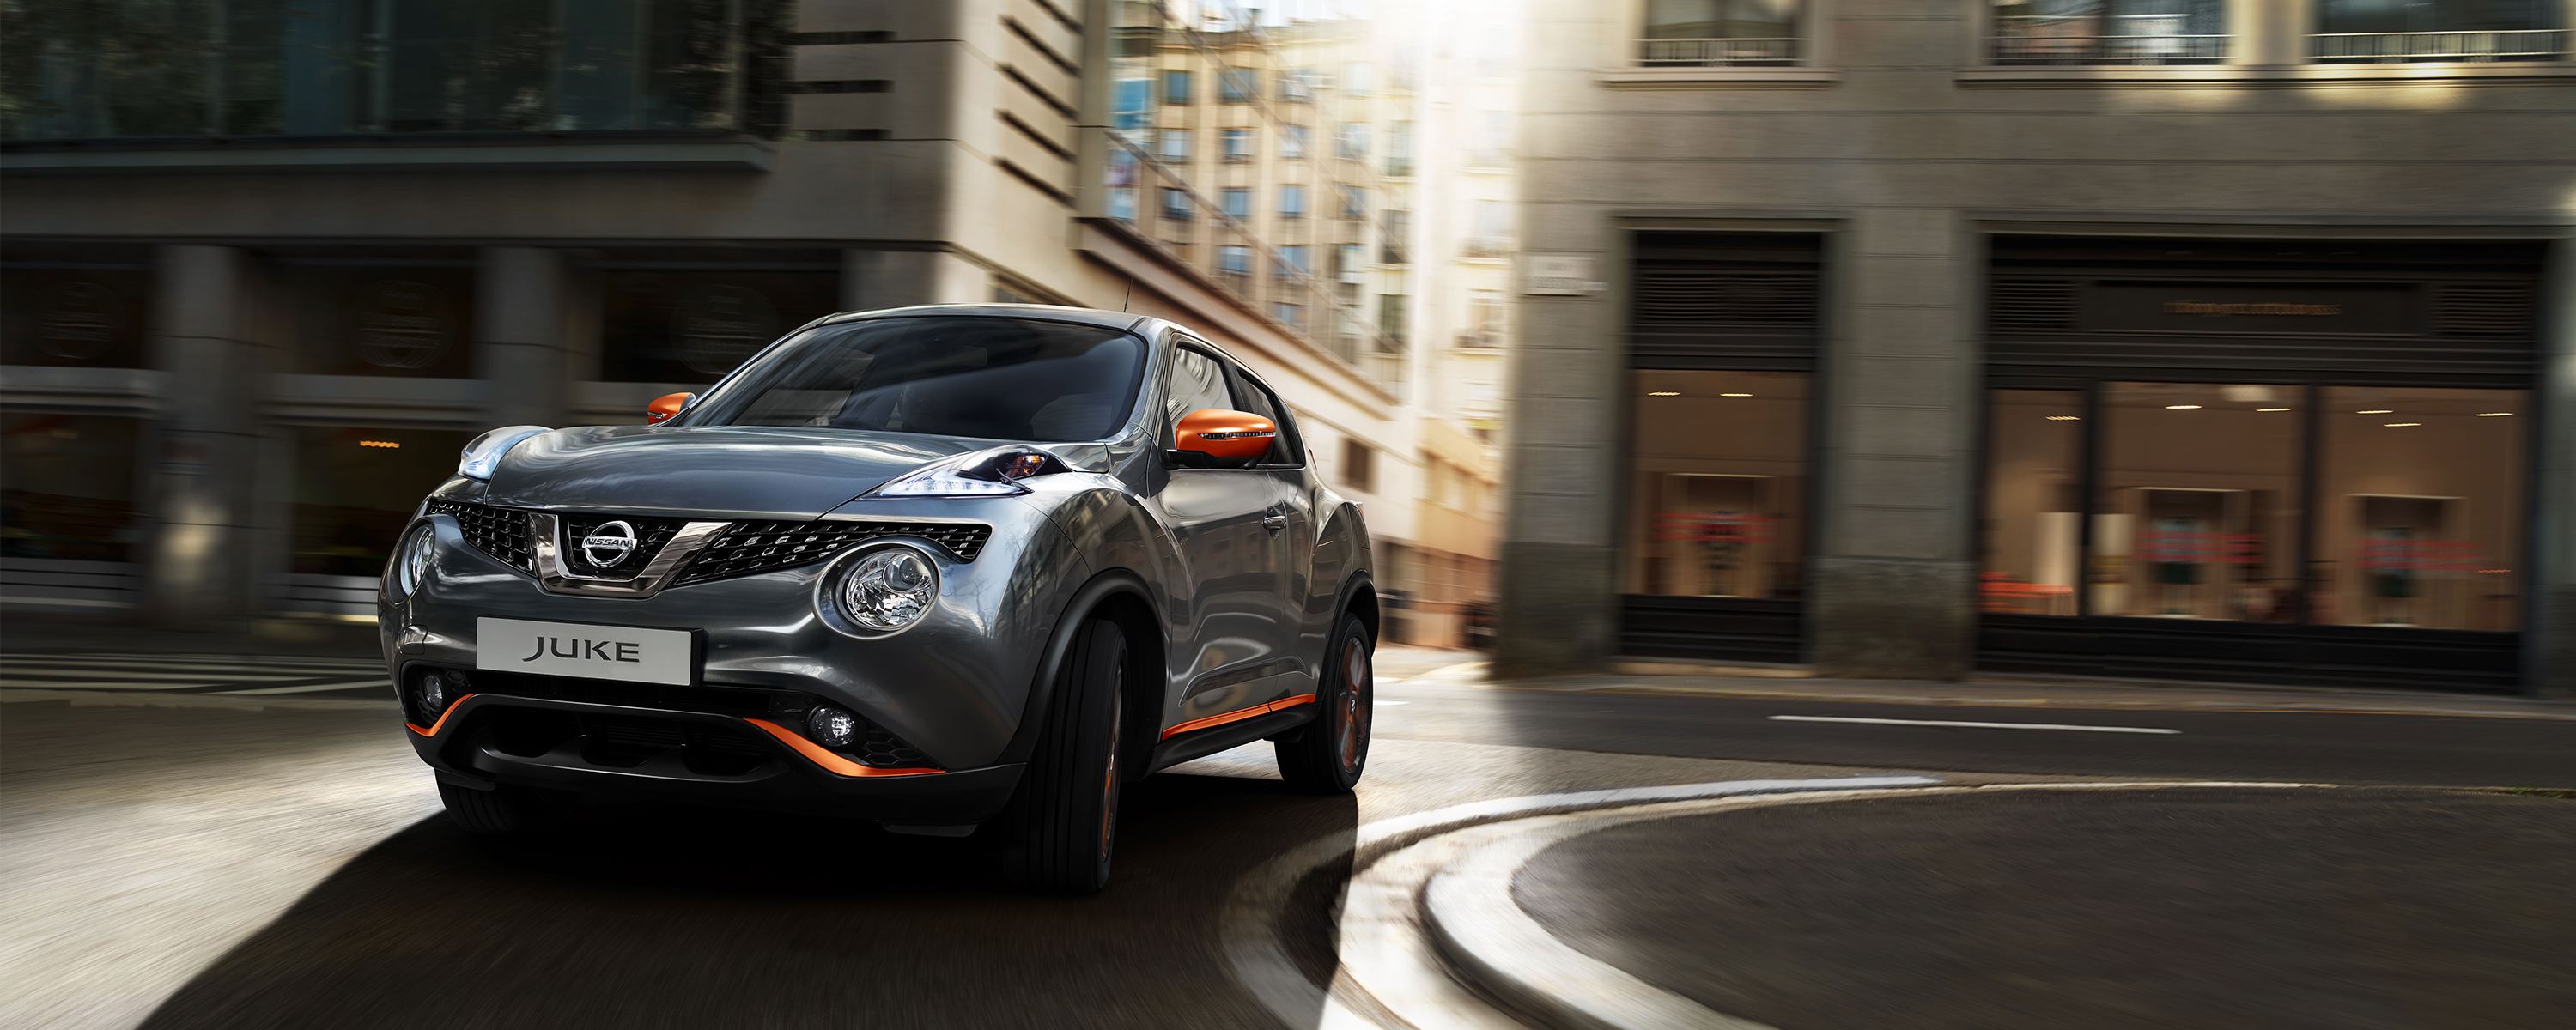 2018 Nissan JUKE front driving shot in a curve in city